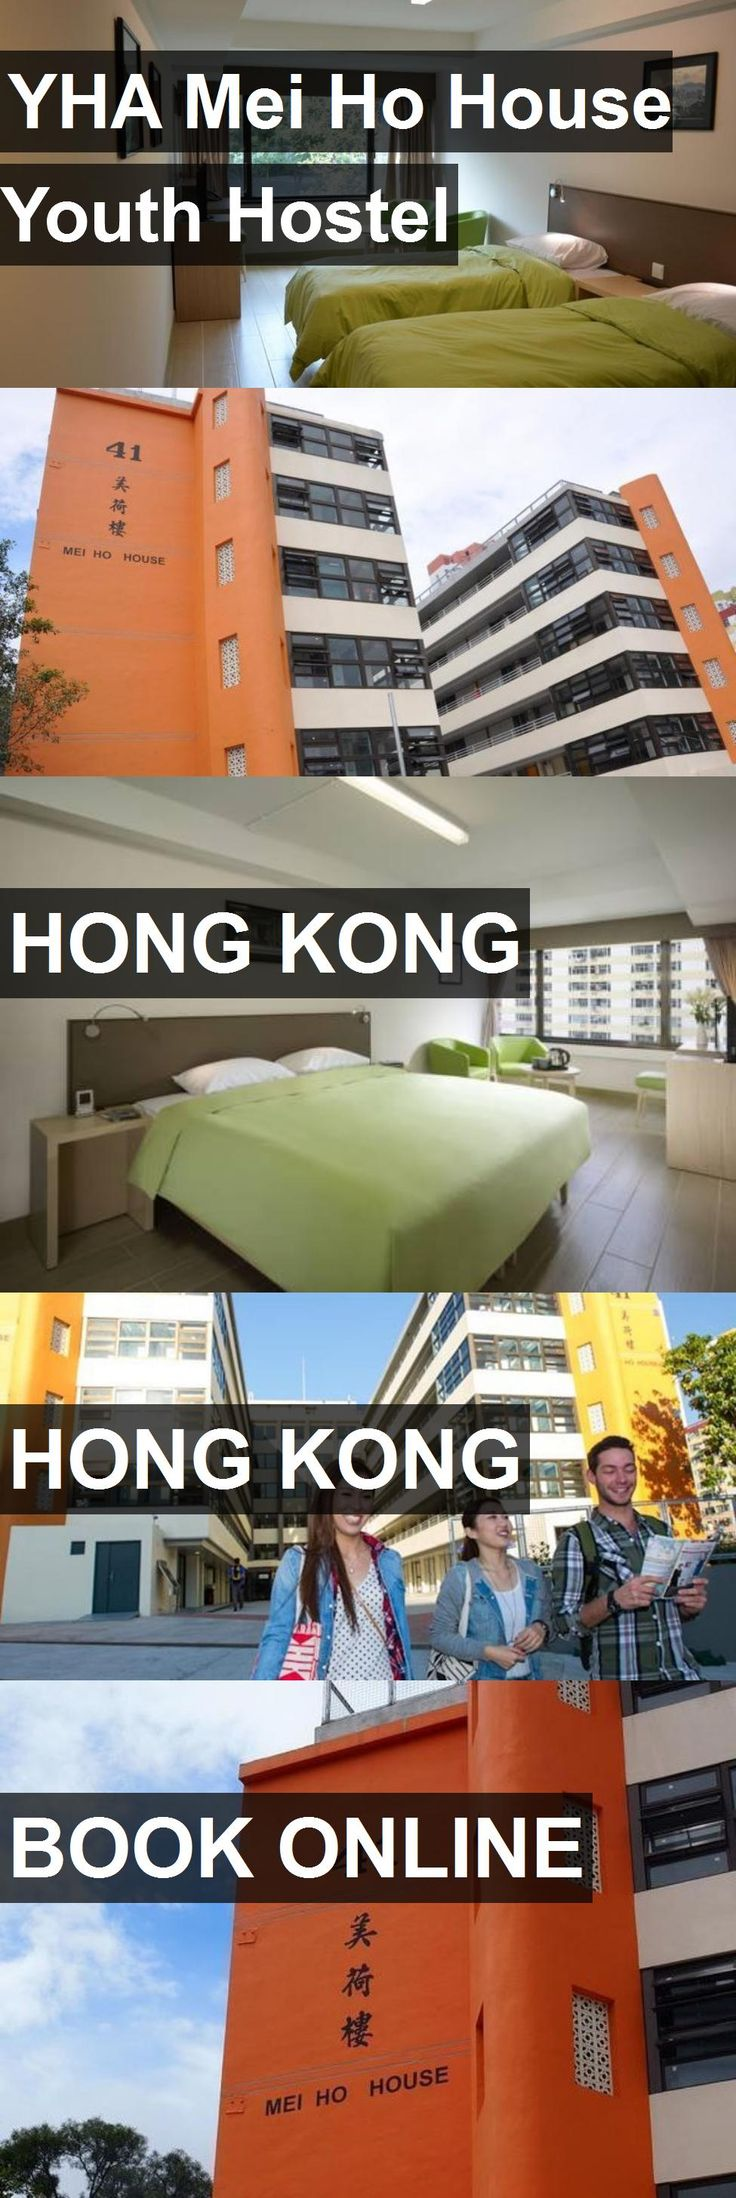 YHA Mei Ho House Youth Hostel in Hong Kong, Hong Kong. For more information, photos, reviews and best prices please follow the link. #HongKong #HongKong #travel #vacation #hostel